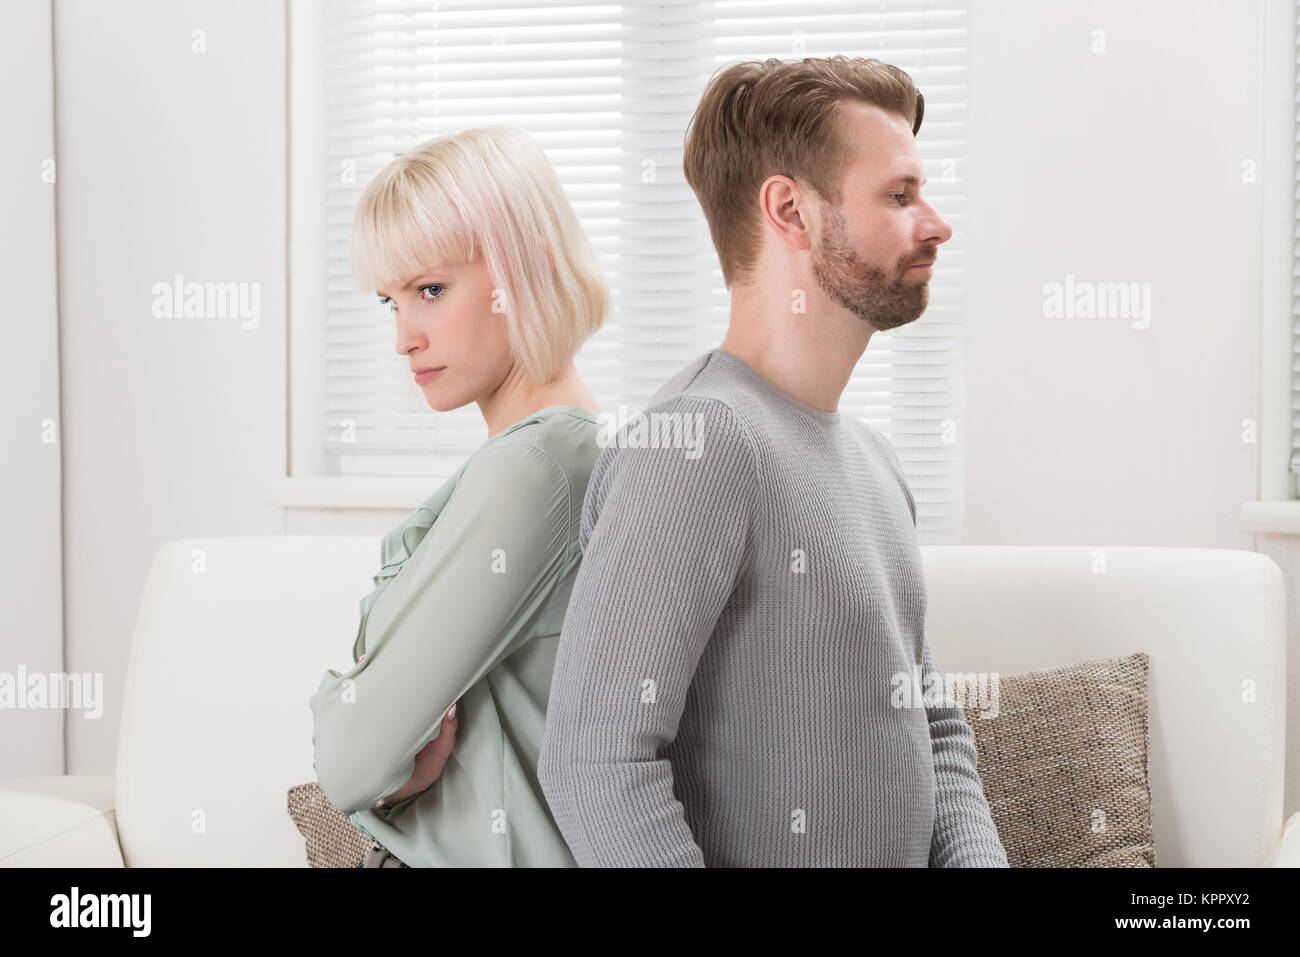 Couple Sitting Back To Back On Couch - Stock Image